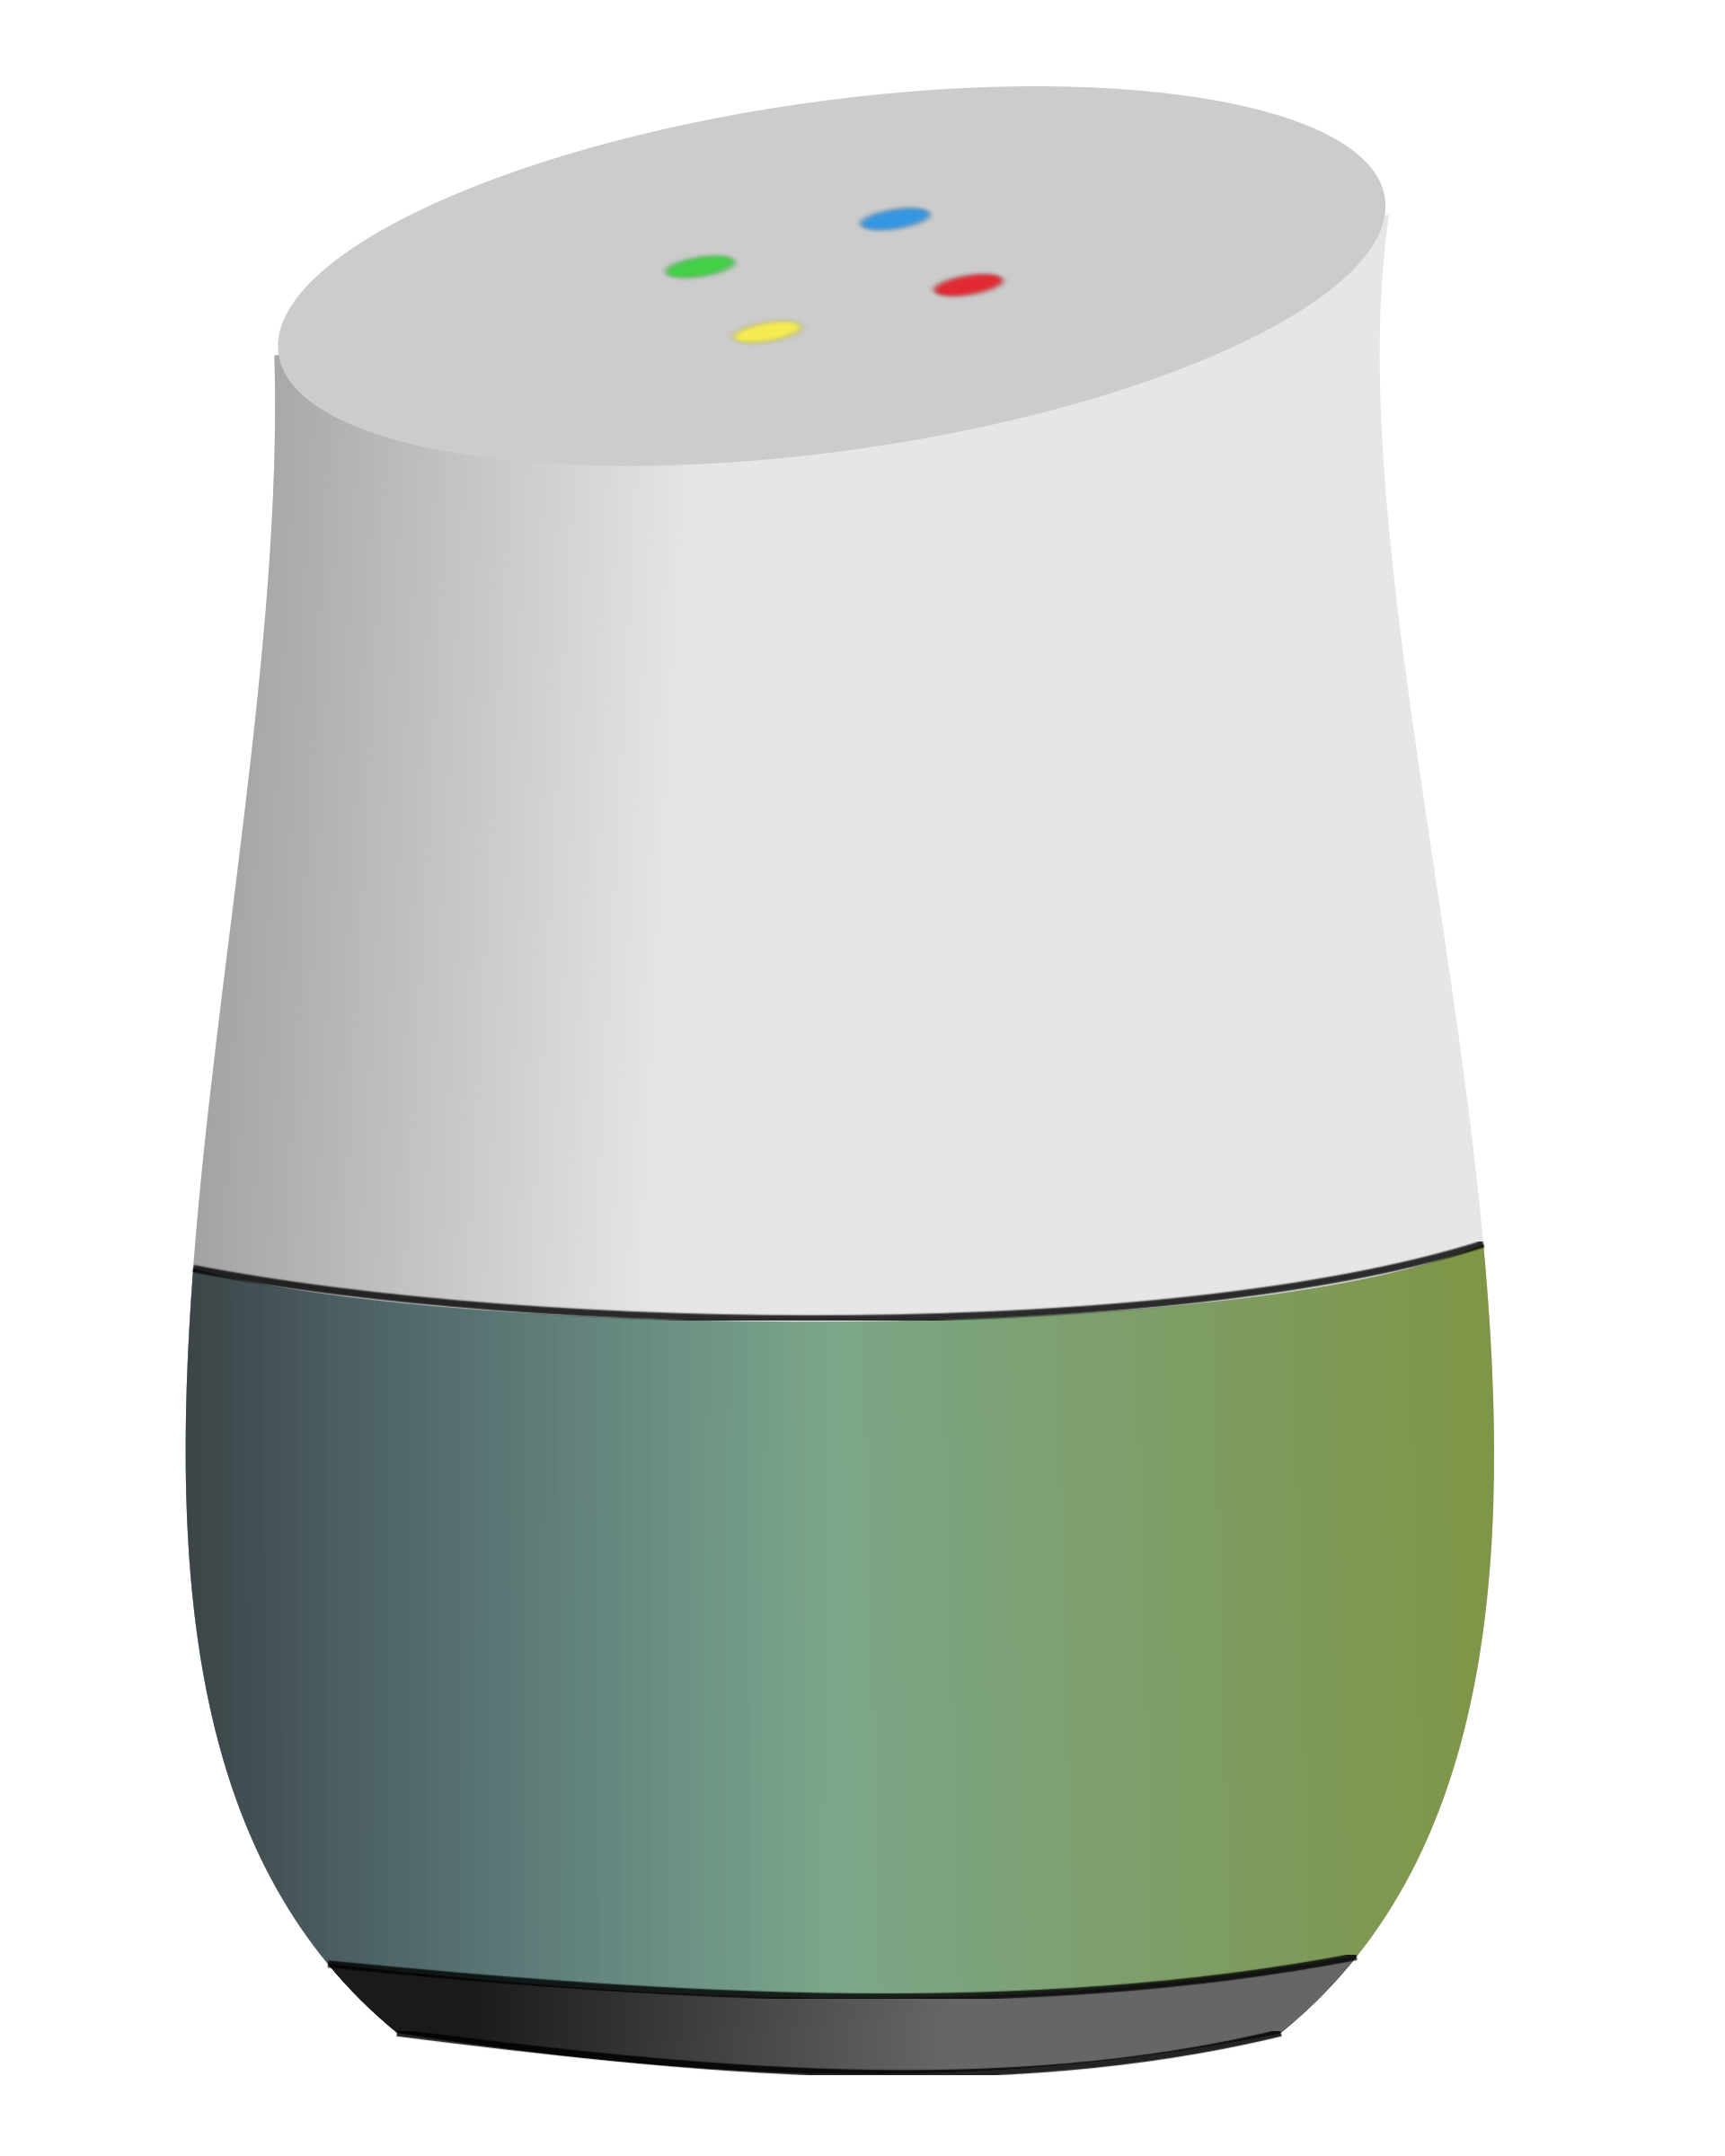 Google Home by hatalar205